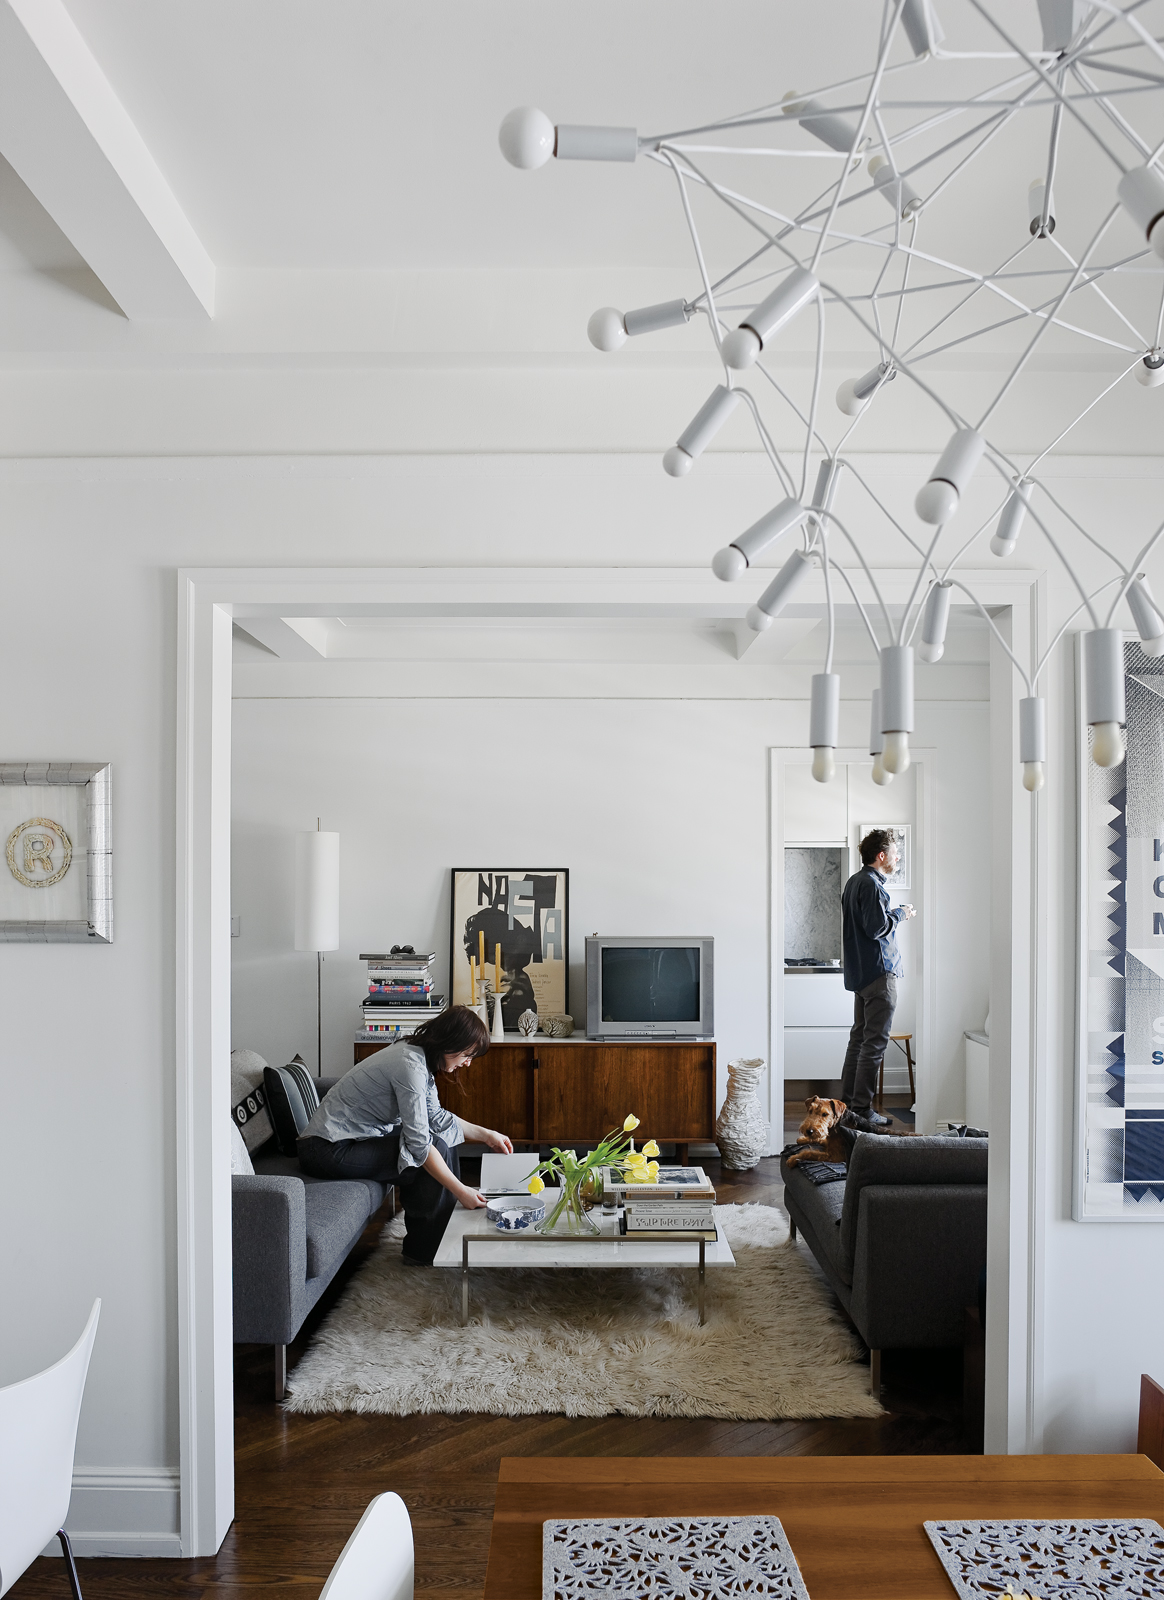 Up on the ninth floor, their sober Neo sofa and chaise from DWR and classic Florence Knoll credenza are contrasted by more exotic accessories like Patrick Townsend's Orbit chandelier and an offbeat white vase from Creative Growth, an Oakland, California,